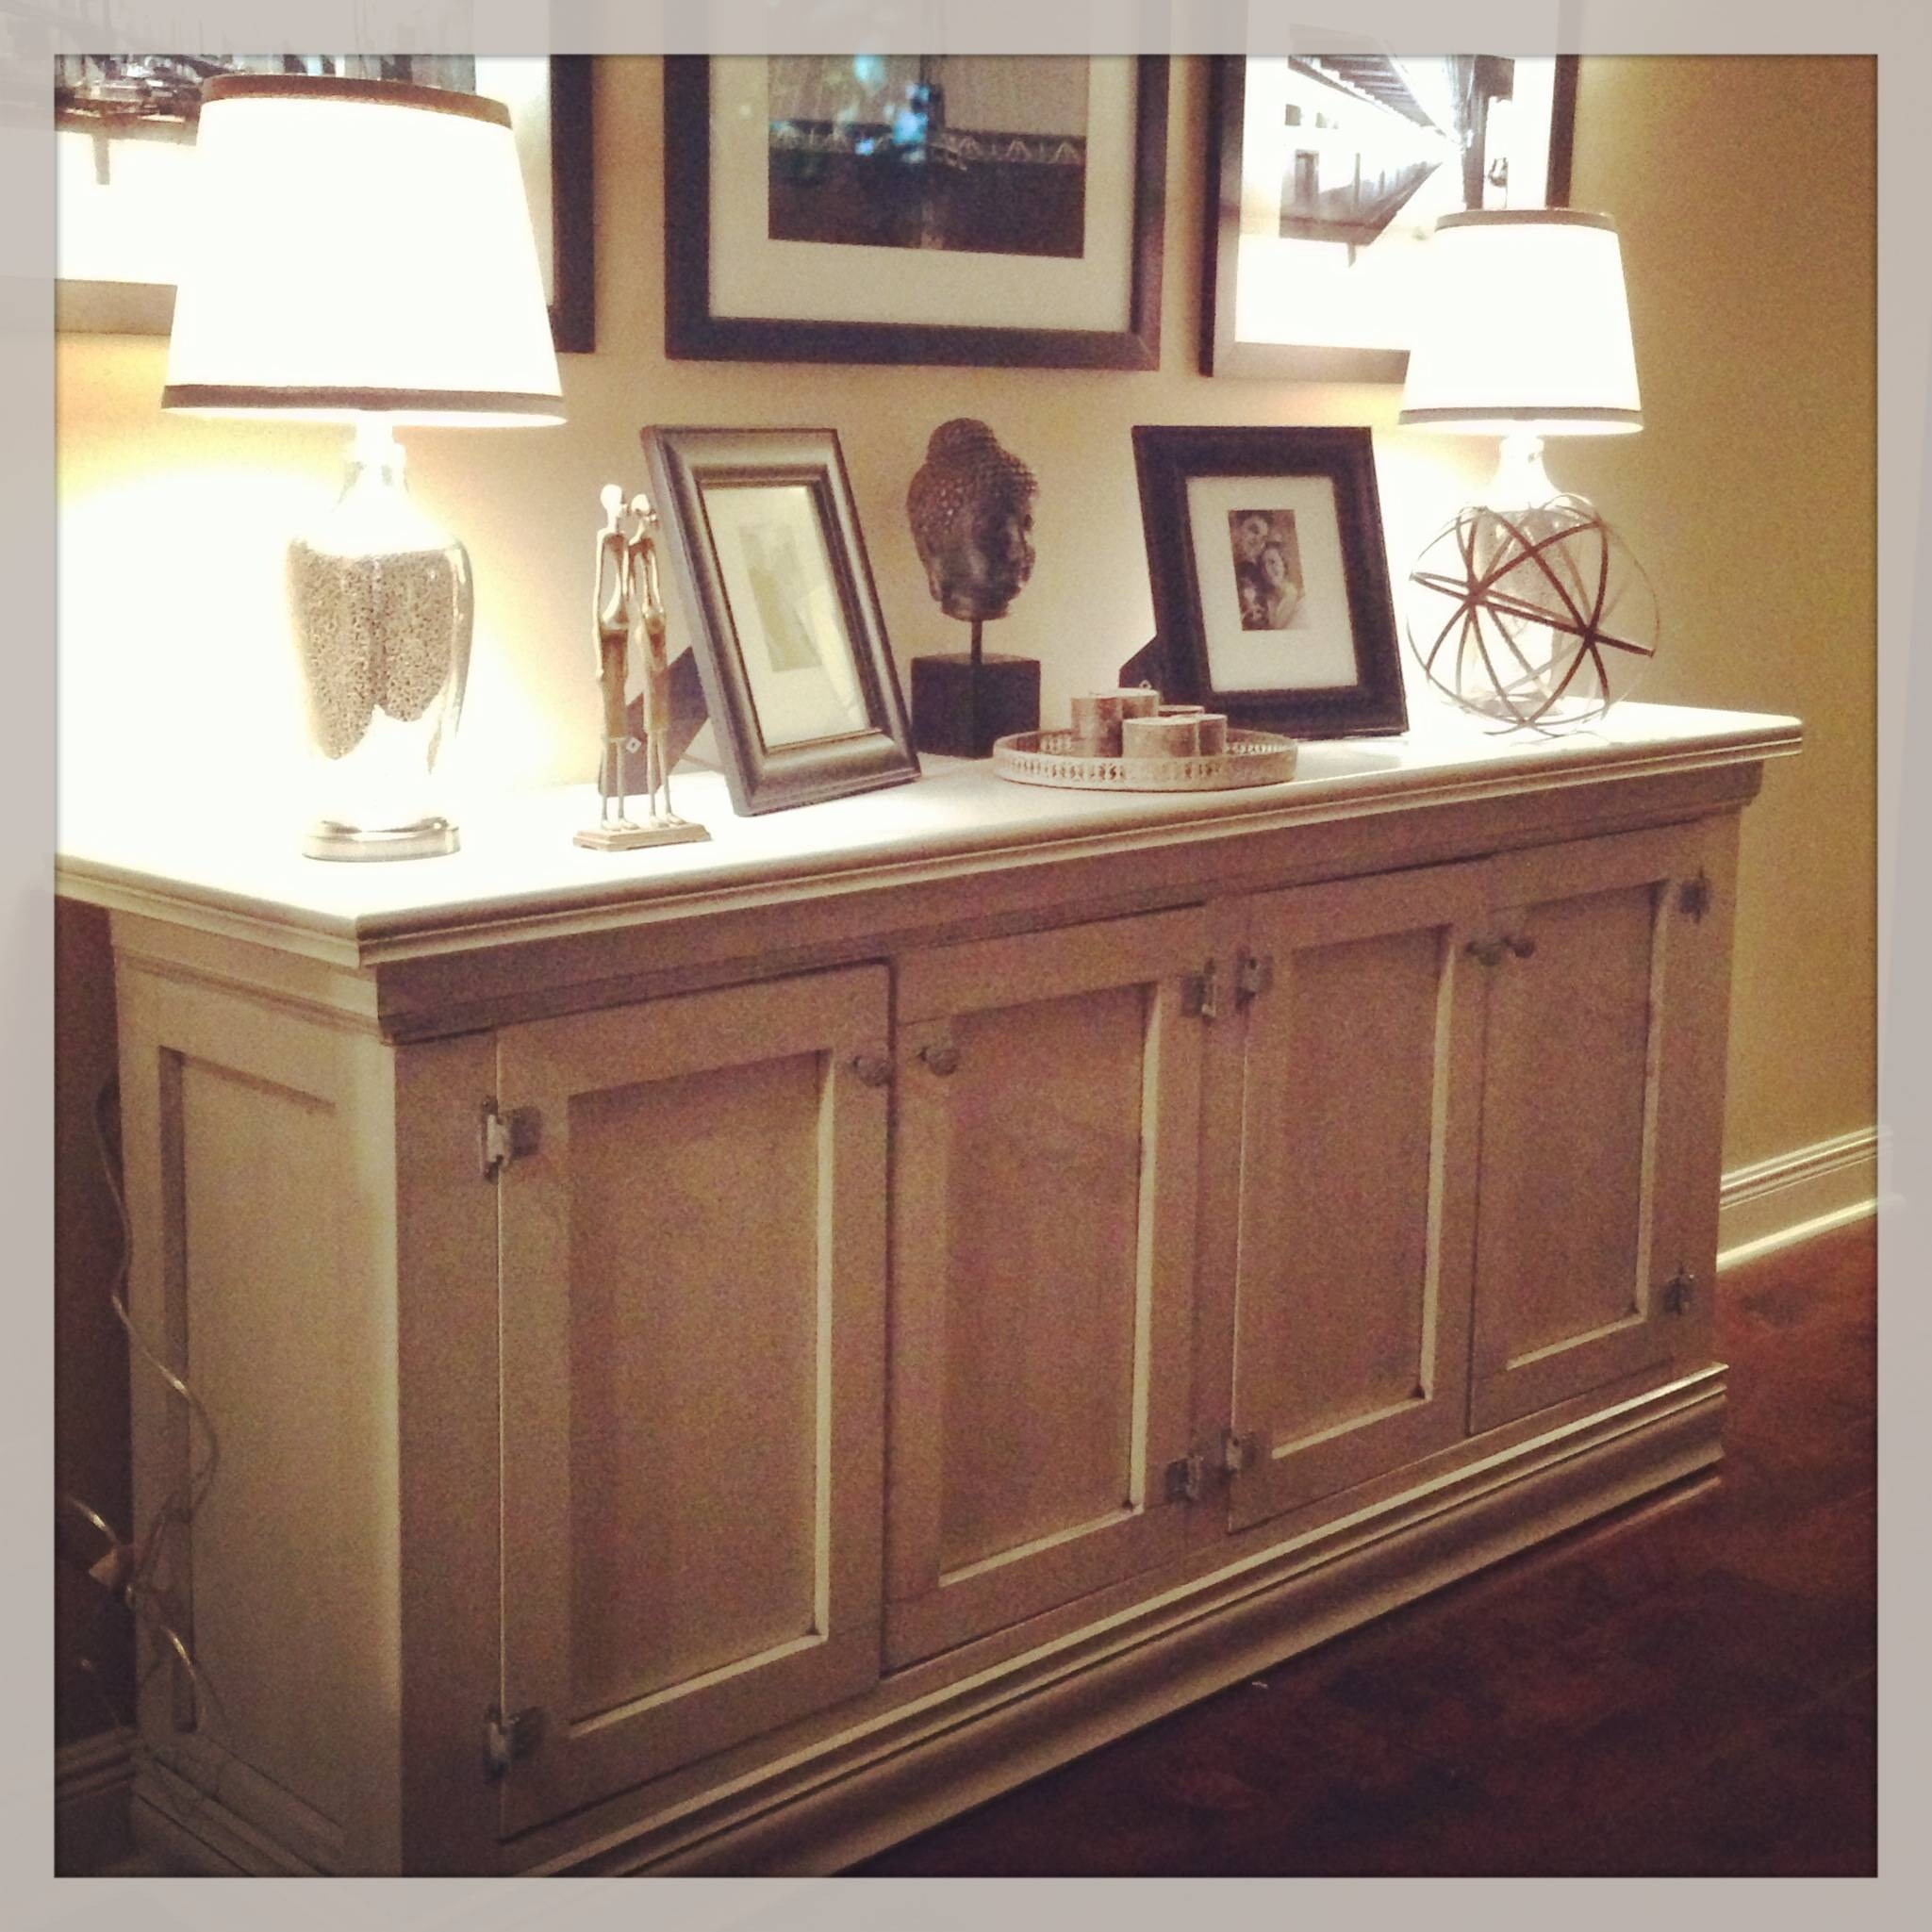 Buffet Or Sideboard Best Of And Diy Sideboard The Sweet Life within Glass Door Buffet Sideboards (Image 5 of 15)